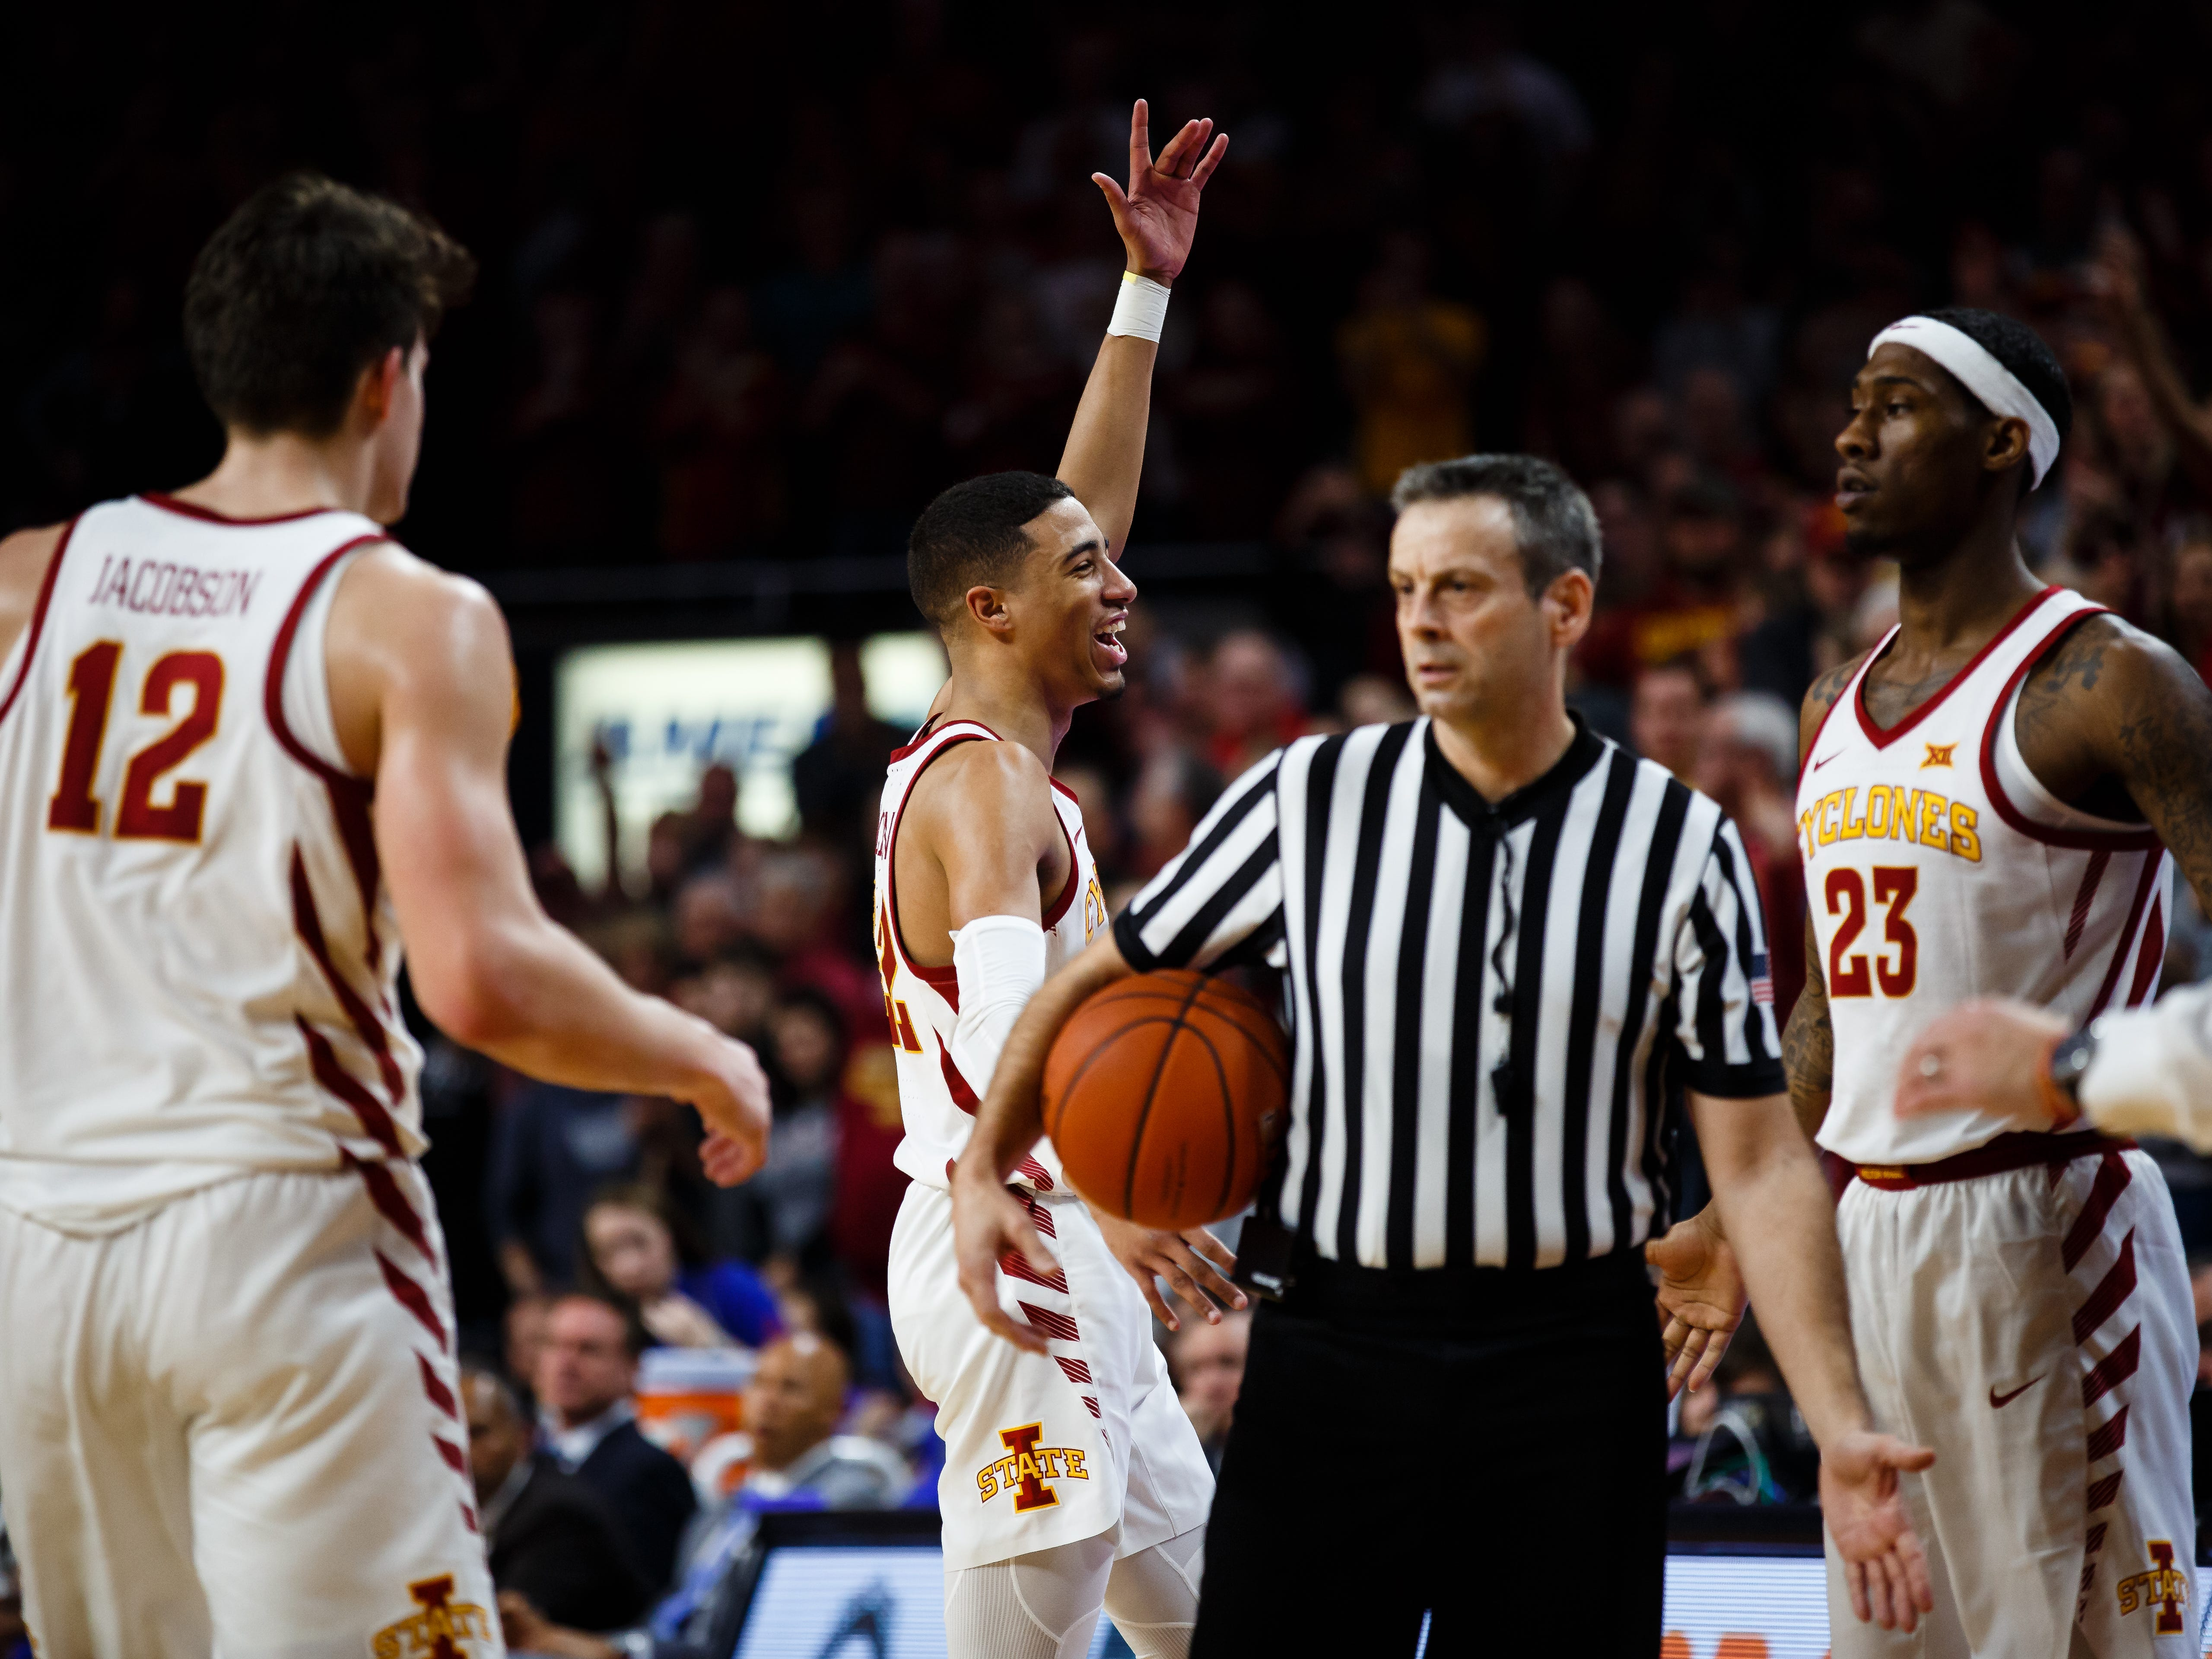 Iowa State's Tyrese Haliburton (22) during the second half of their basketball game on Saturday, Jan. 5, 2019, in Ames. Iowa State would go on to beat Kansas 77-60.